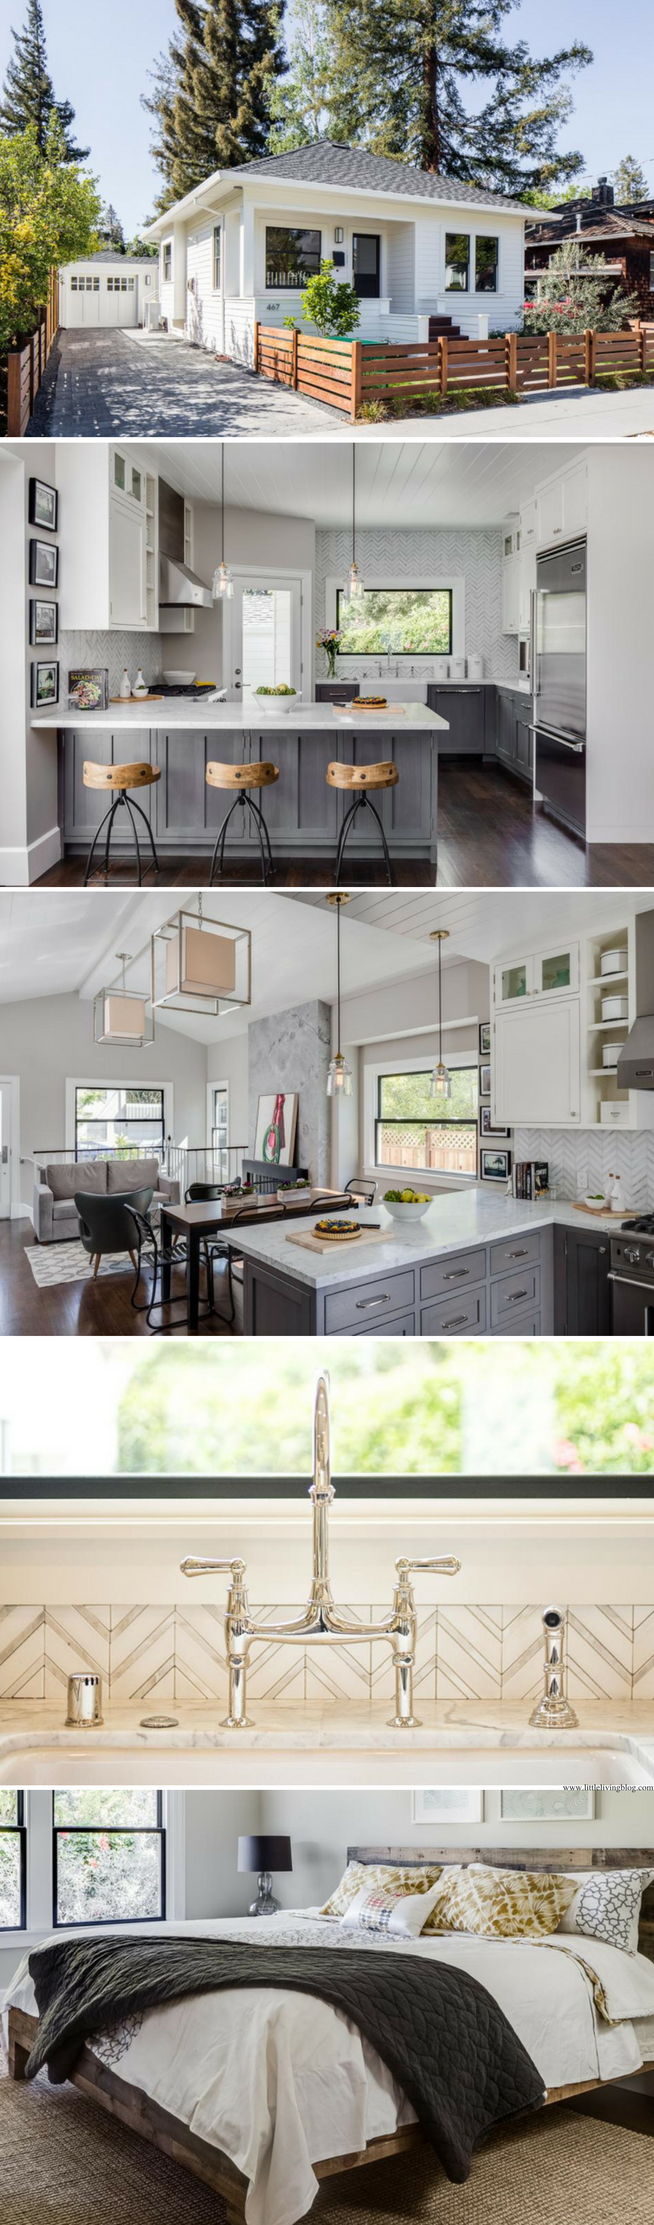 interior design of bungalow houses%0A A Napa Valley cottage designedy by Lindsay Chambers  Small House Interior  DesignSmall